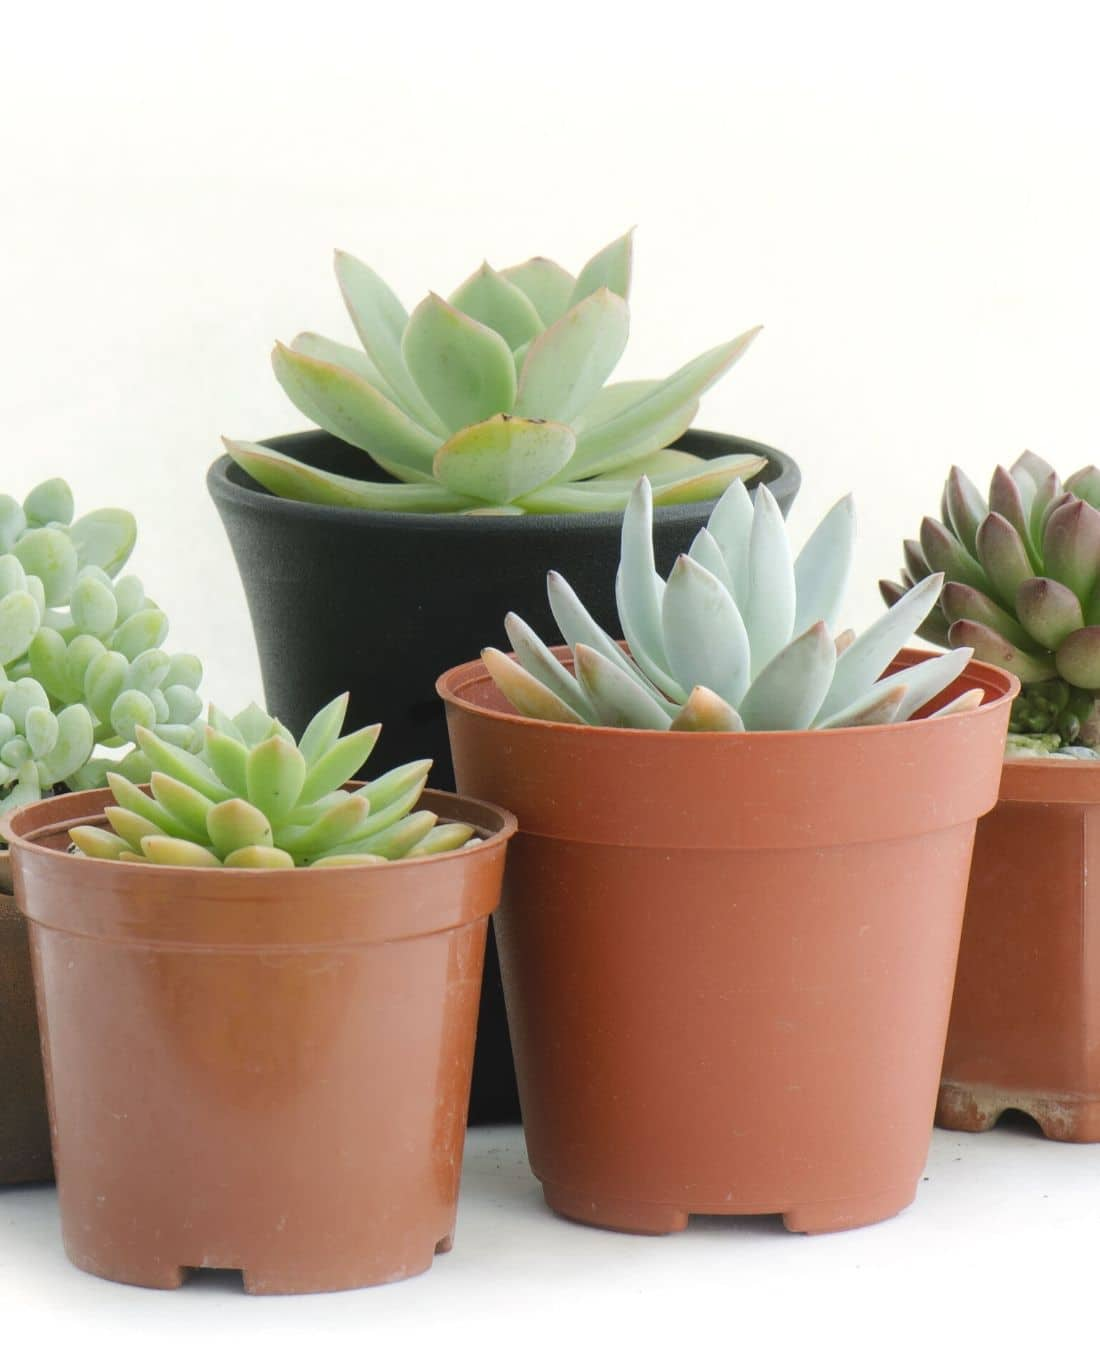 Office Desk Plants | Office Plants | Benefits Of Plants In The Office | ImpeccaBuild 14